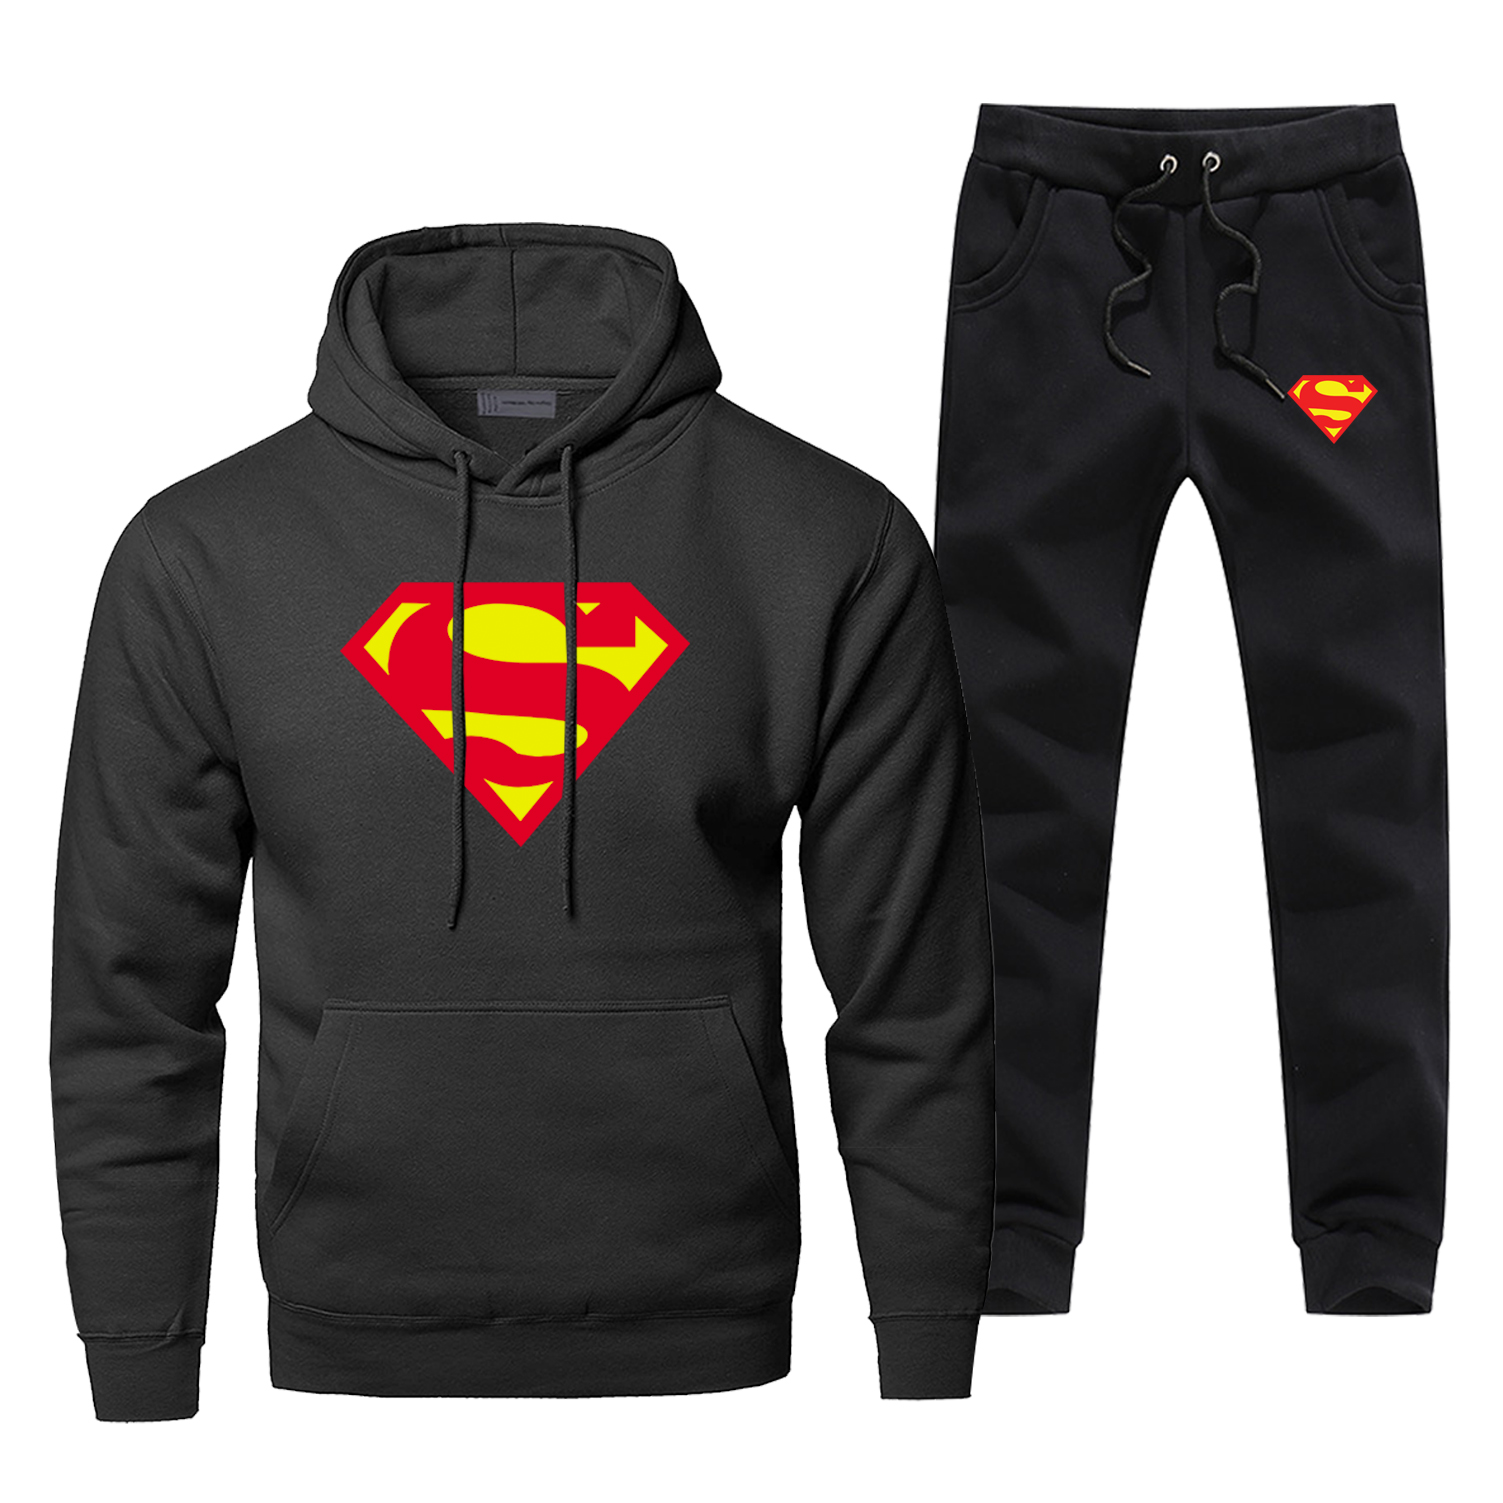 Superman Clark Kent Hoodies Pants Sets Men Suit Tracksuit 2 Piece Super Man Sweatshirt Sweatpants Sportswear Autumn Sports Set